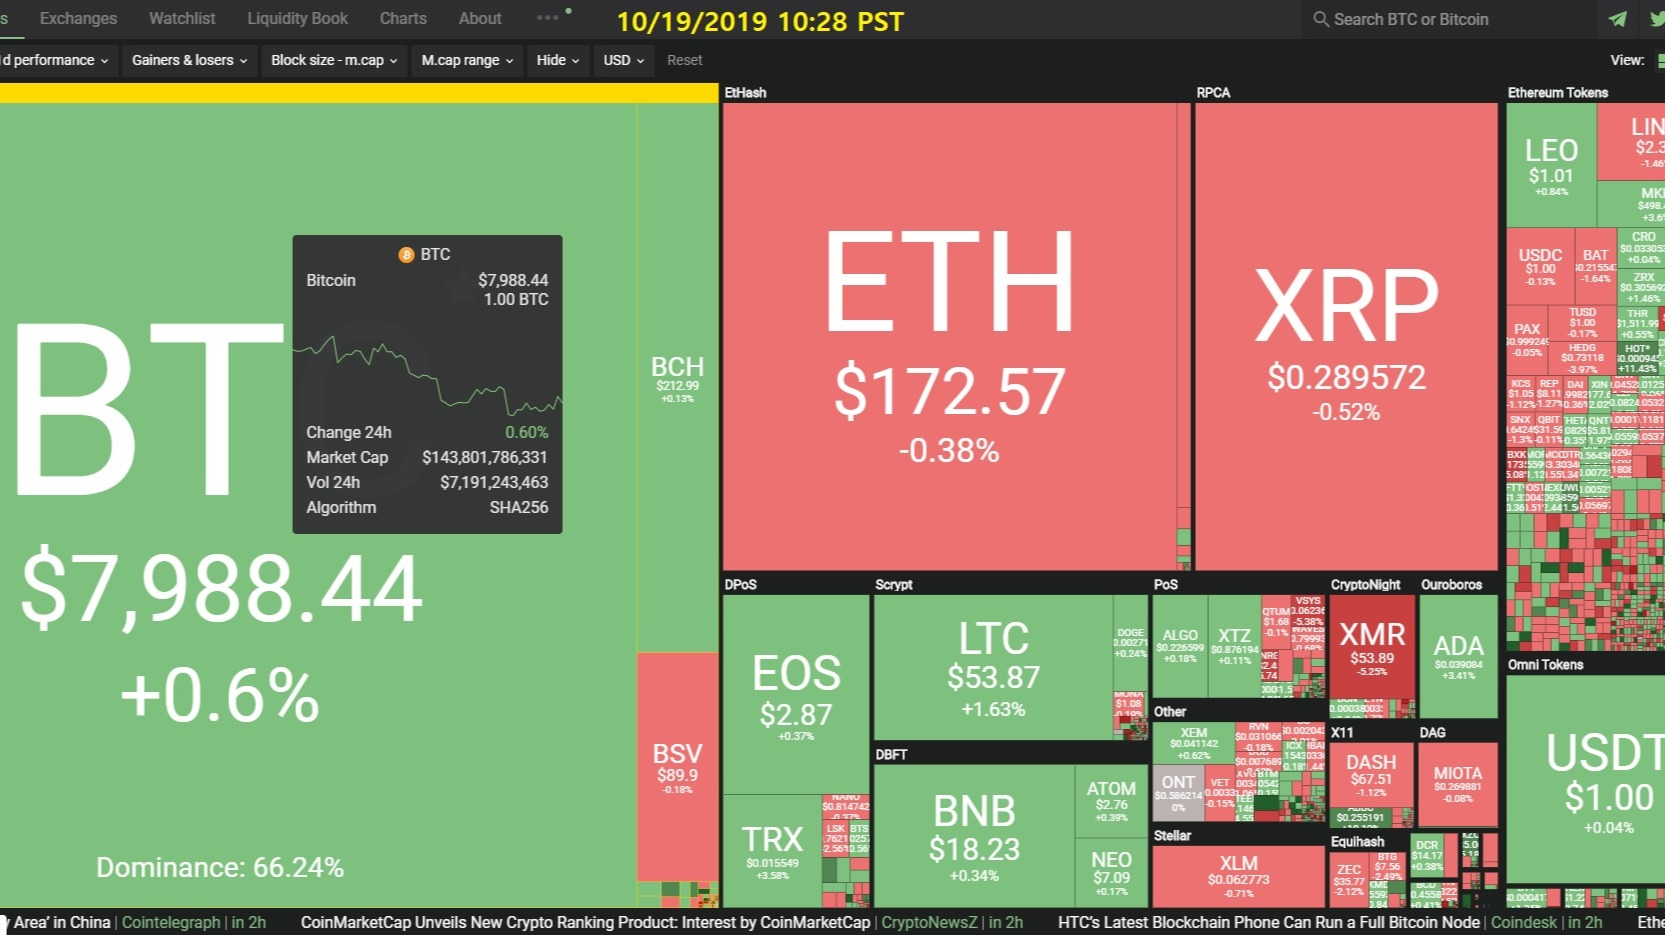 Curate Bitcoin 10/19/2019 by dobobs